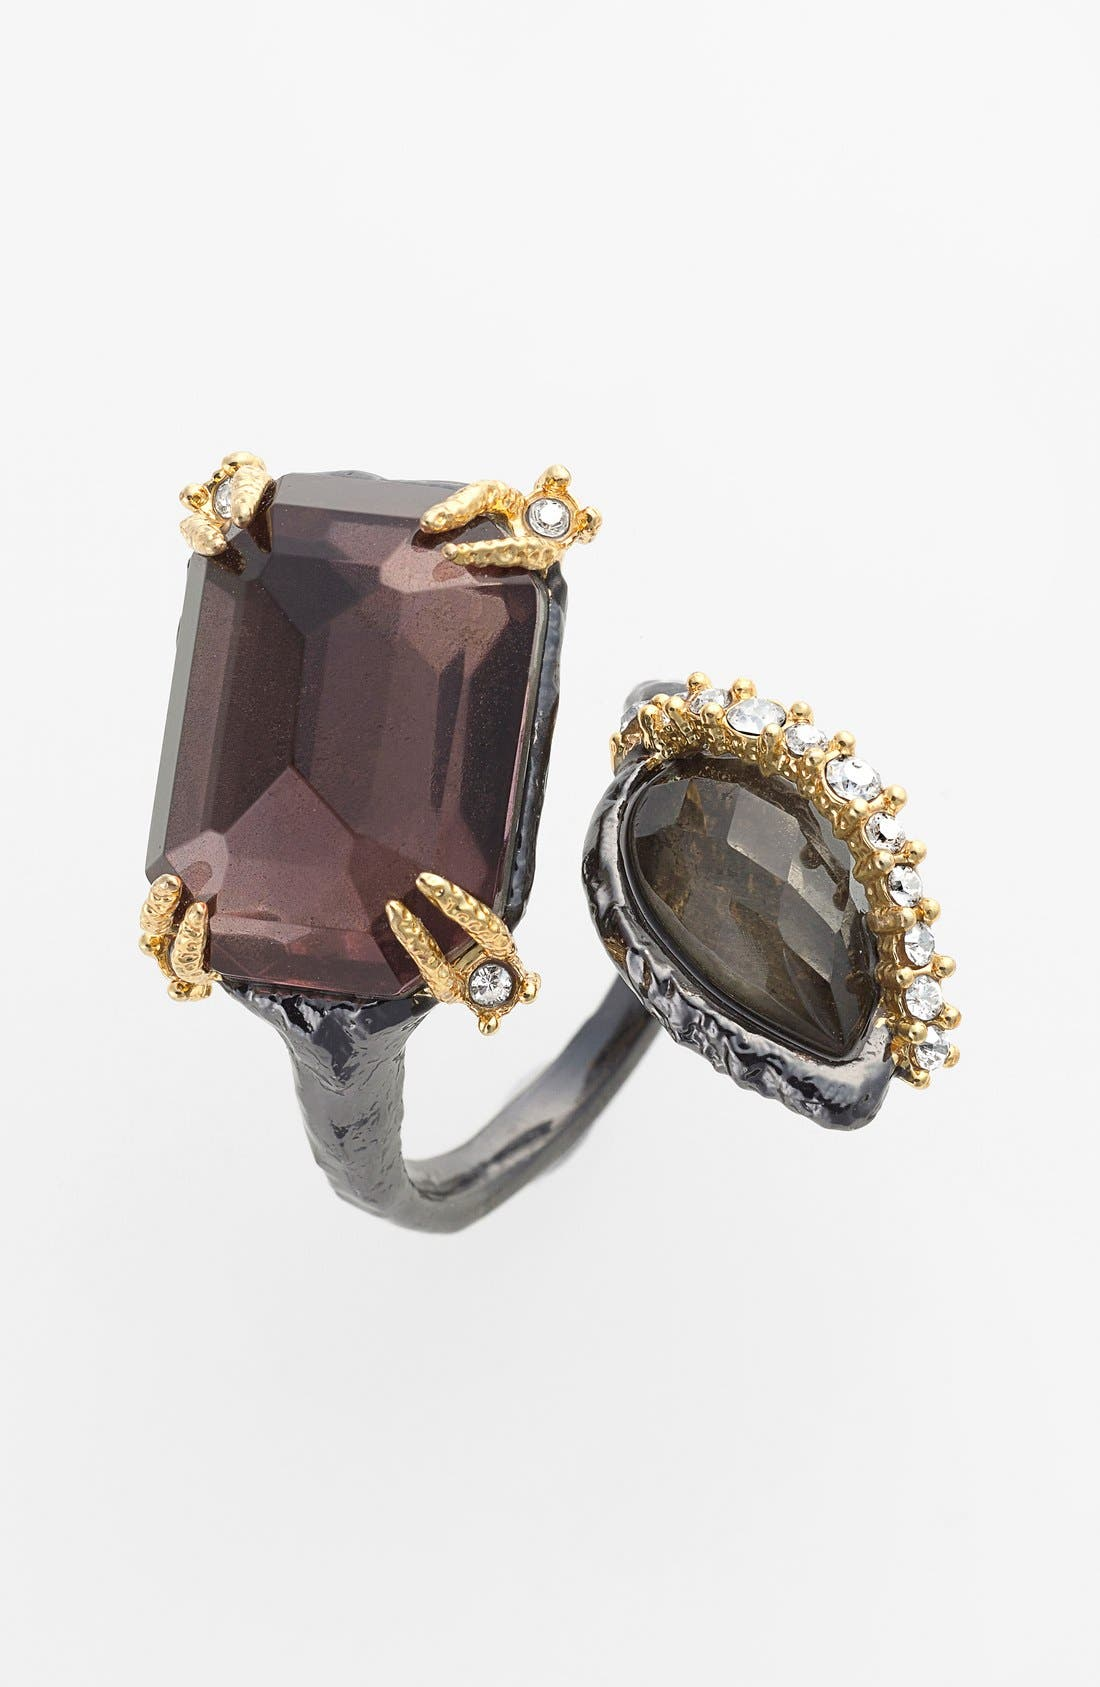 Main Image - Alexis Bittar 'Elements - Muse d'Or' Doublet Open Ring